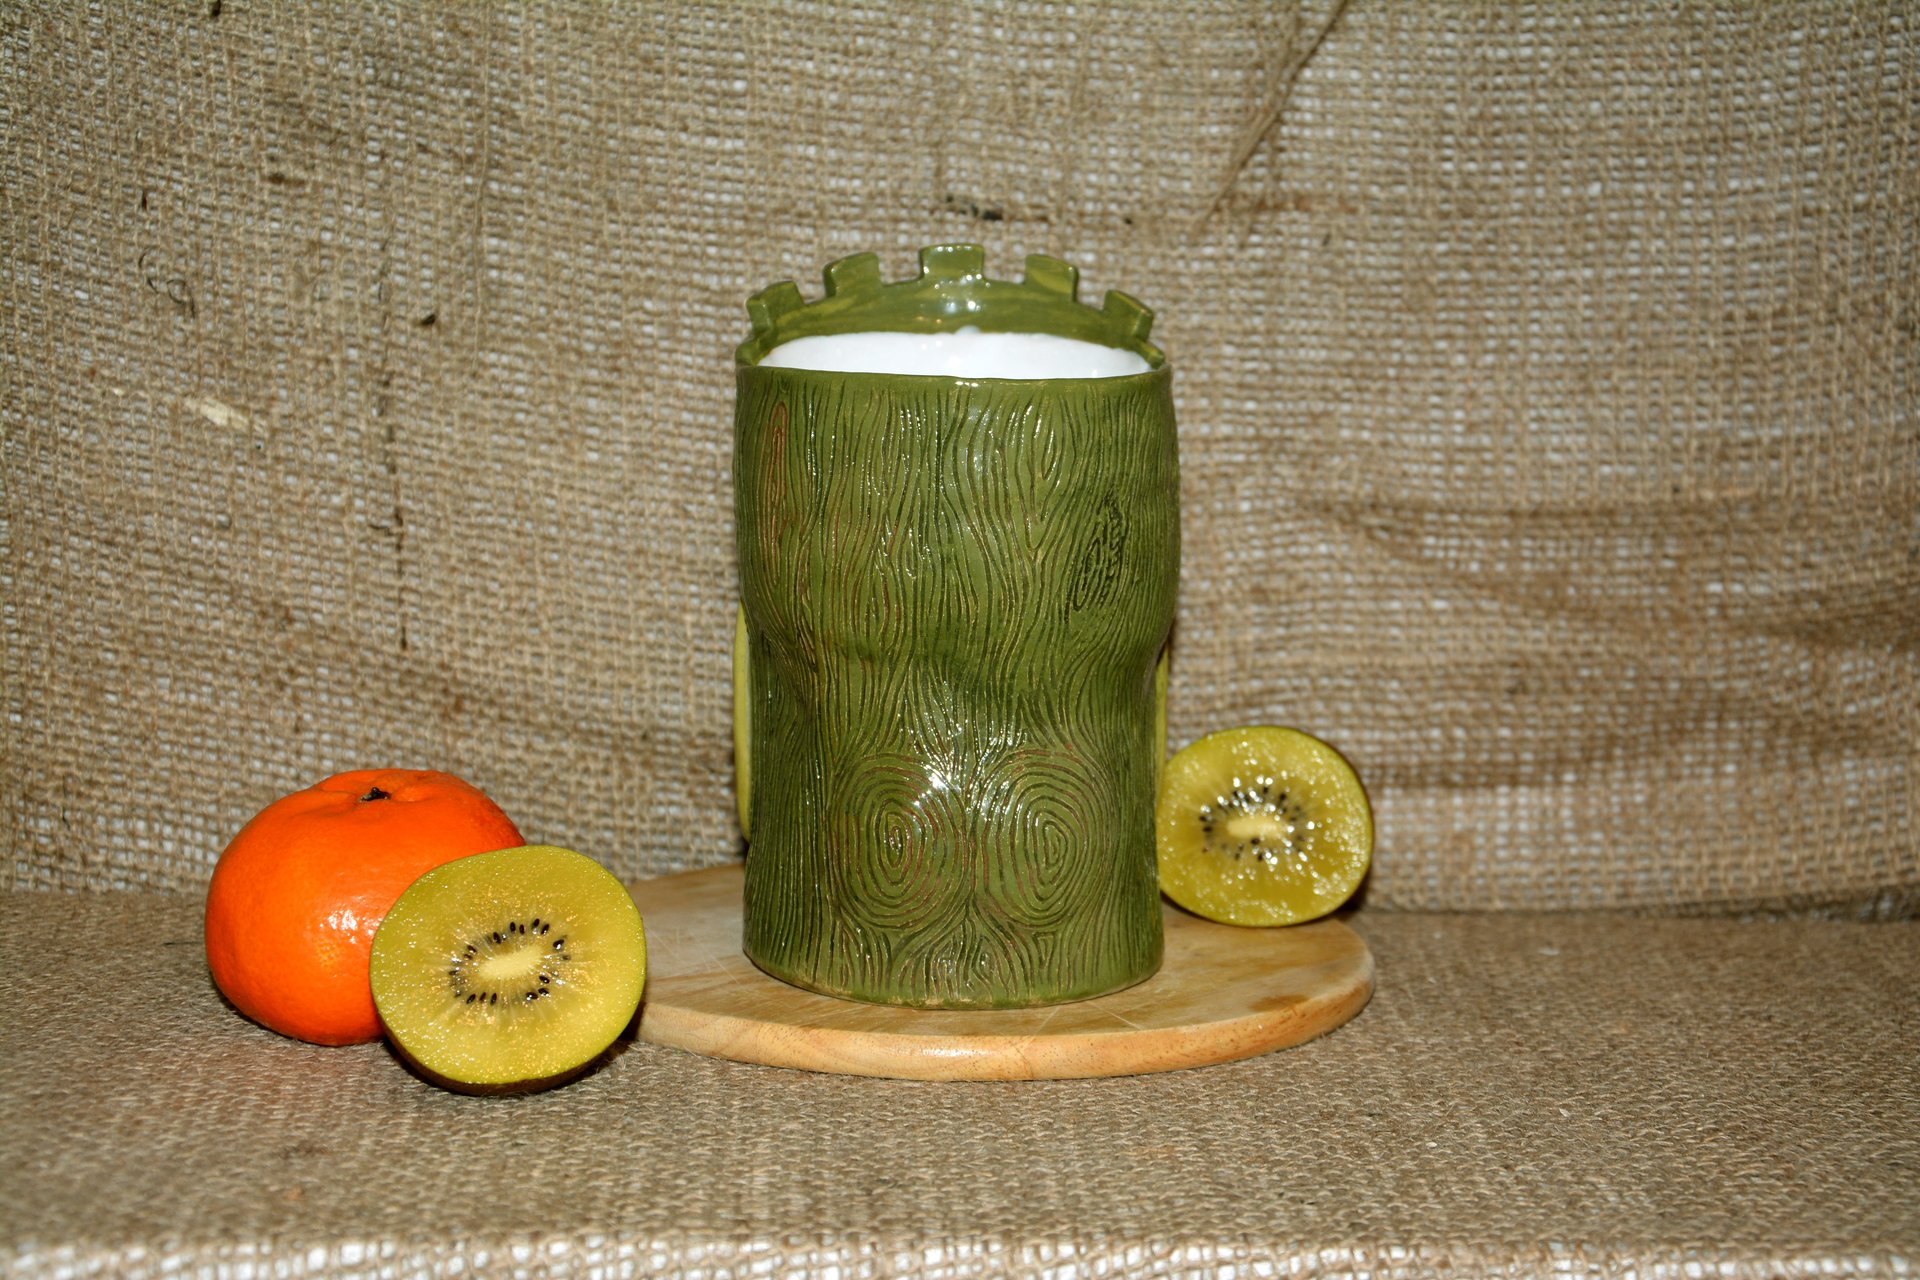 Huge Tiki Glass, color- green, height - 14 cm, volume - 0,7 l, photo 3 of 5.